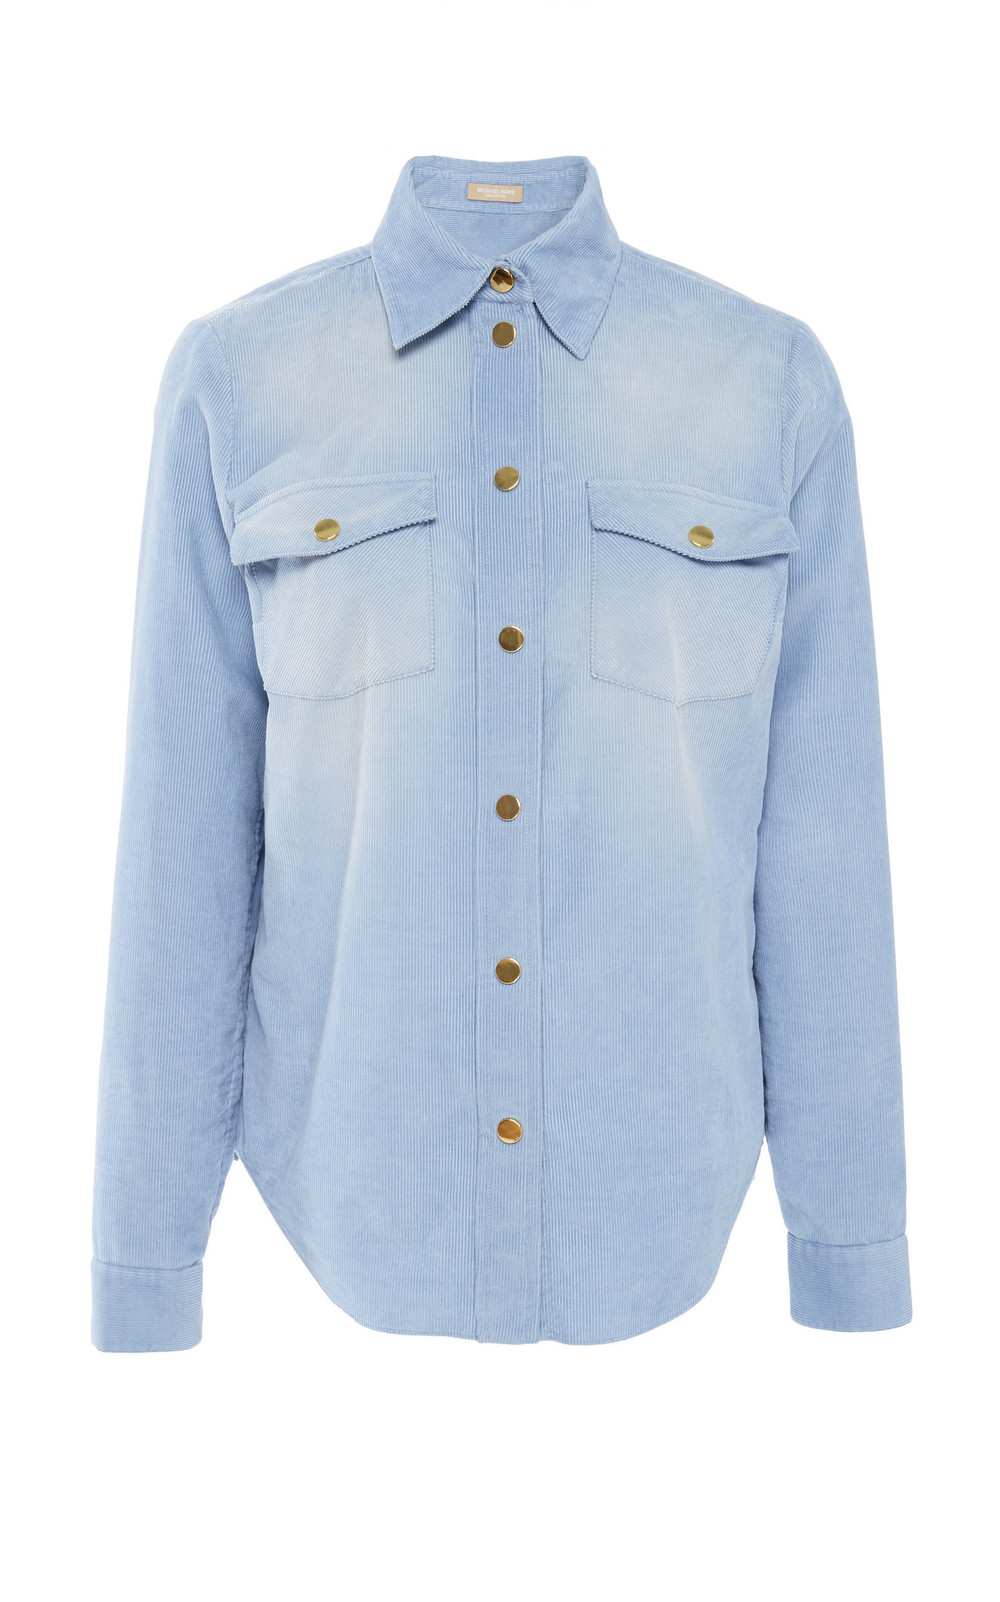 Michael Kors Collection Snap Corduroy Shirt in blue